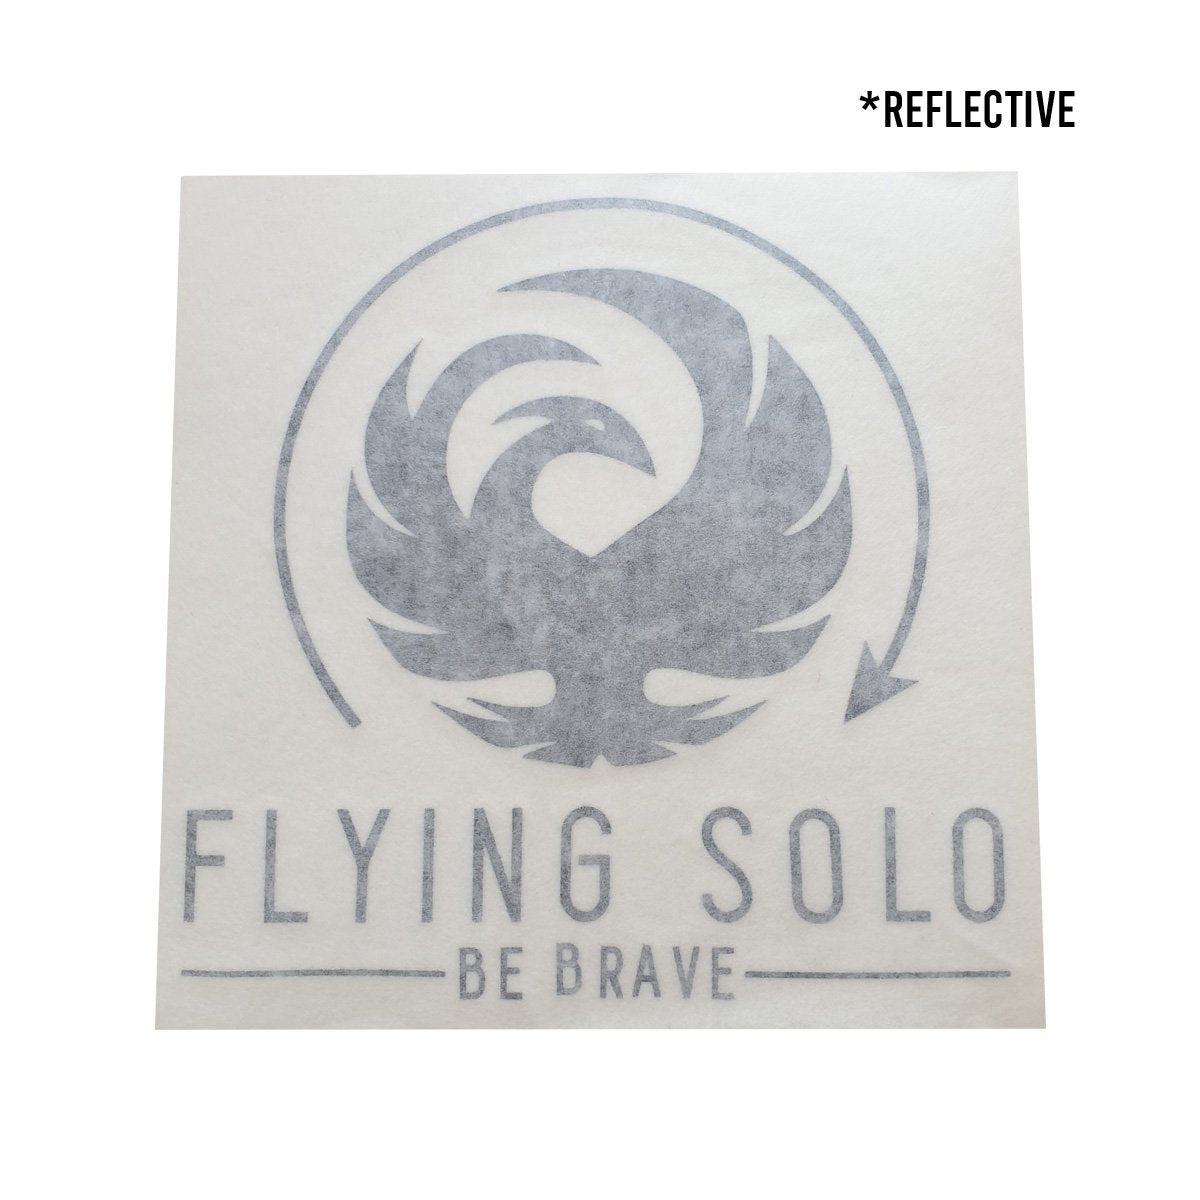 Flying Solo Original Waterproof Die-Cut Decal - Flying Solo Gear Company